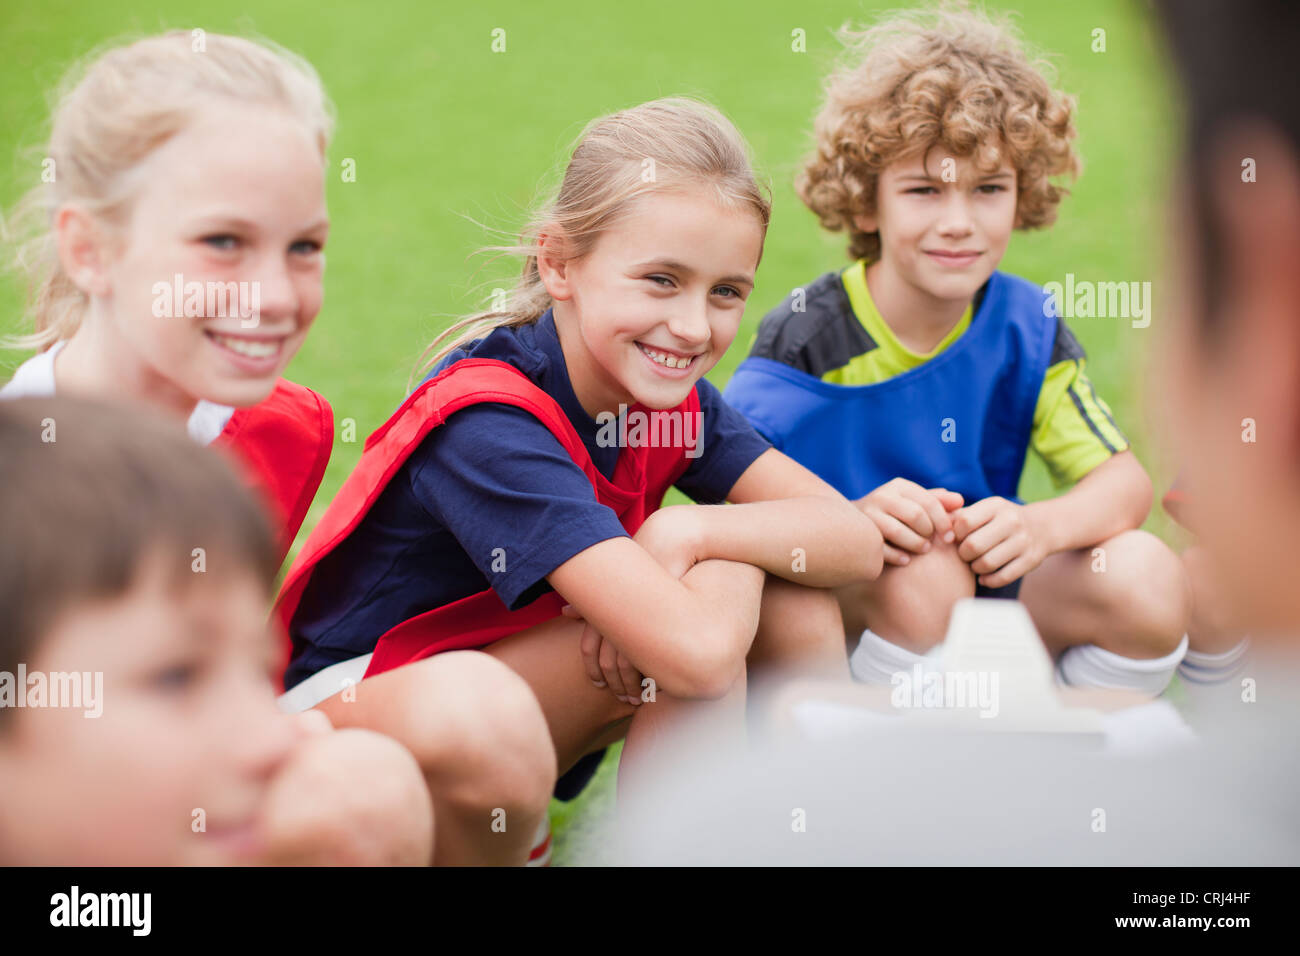 Children laughing during soccer practice - Stock Image